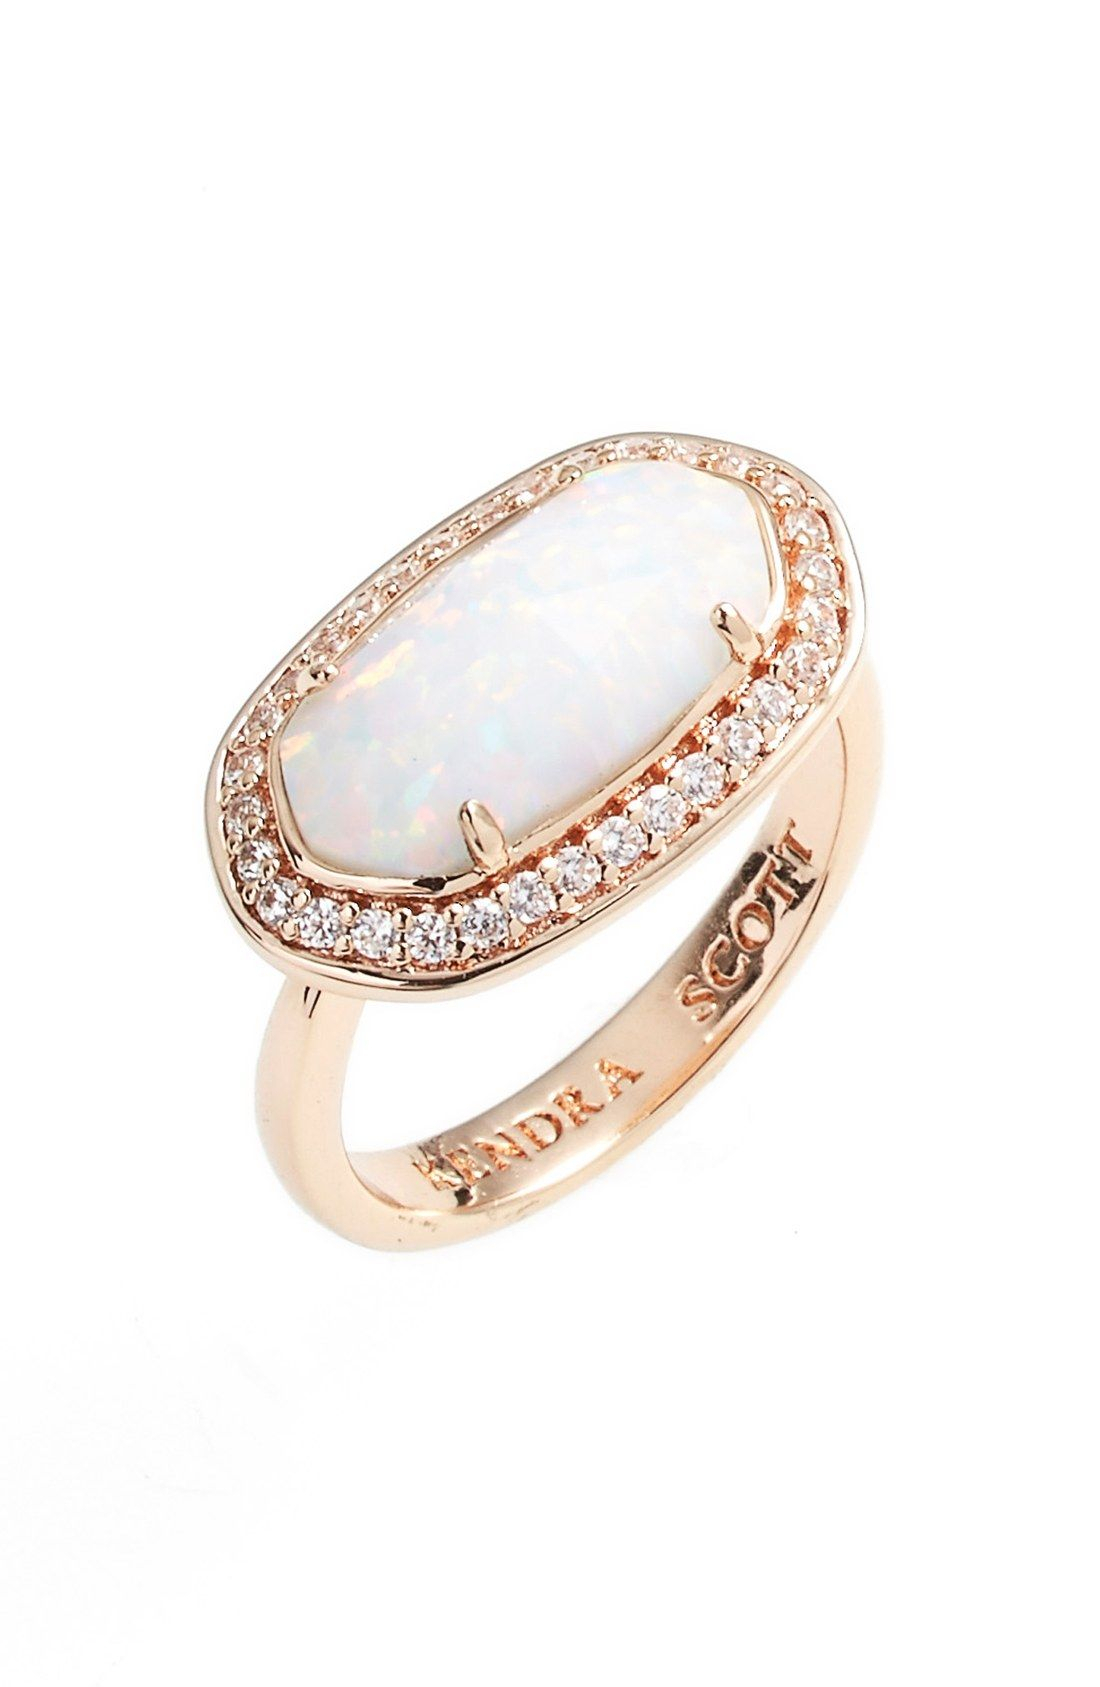 The Perfect Complement To That Holiday Party Dress, This Playful And With Most Popular Multifaceted Rings (View 14 of 25)